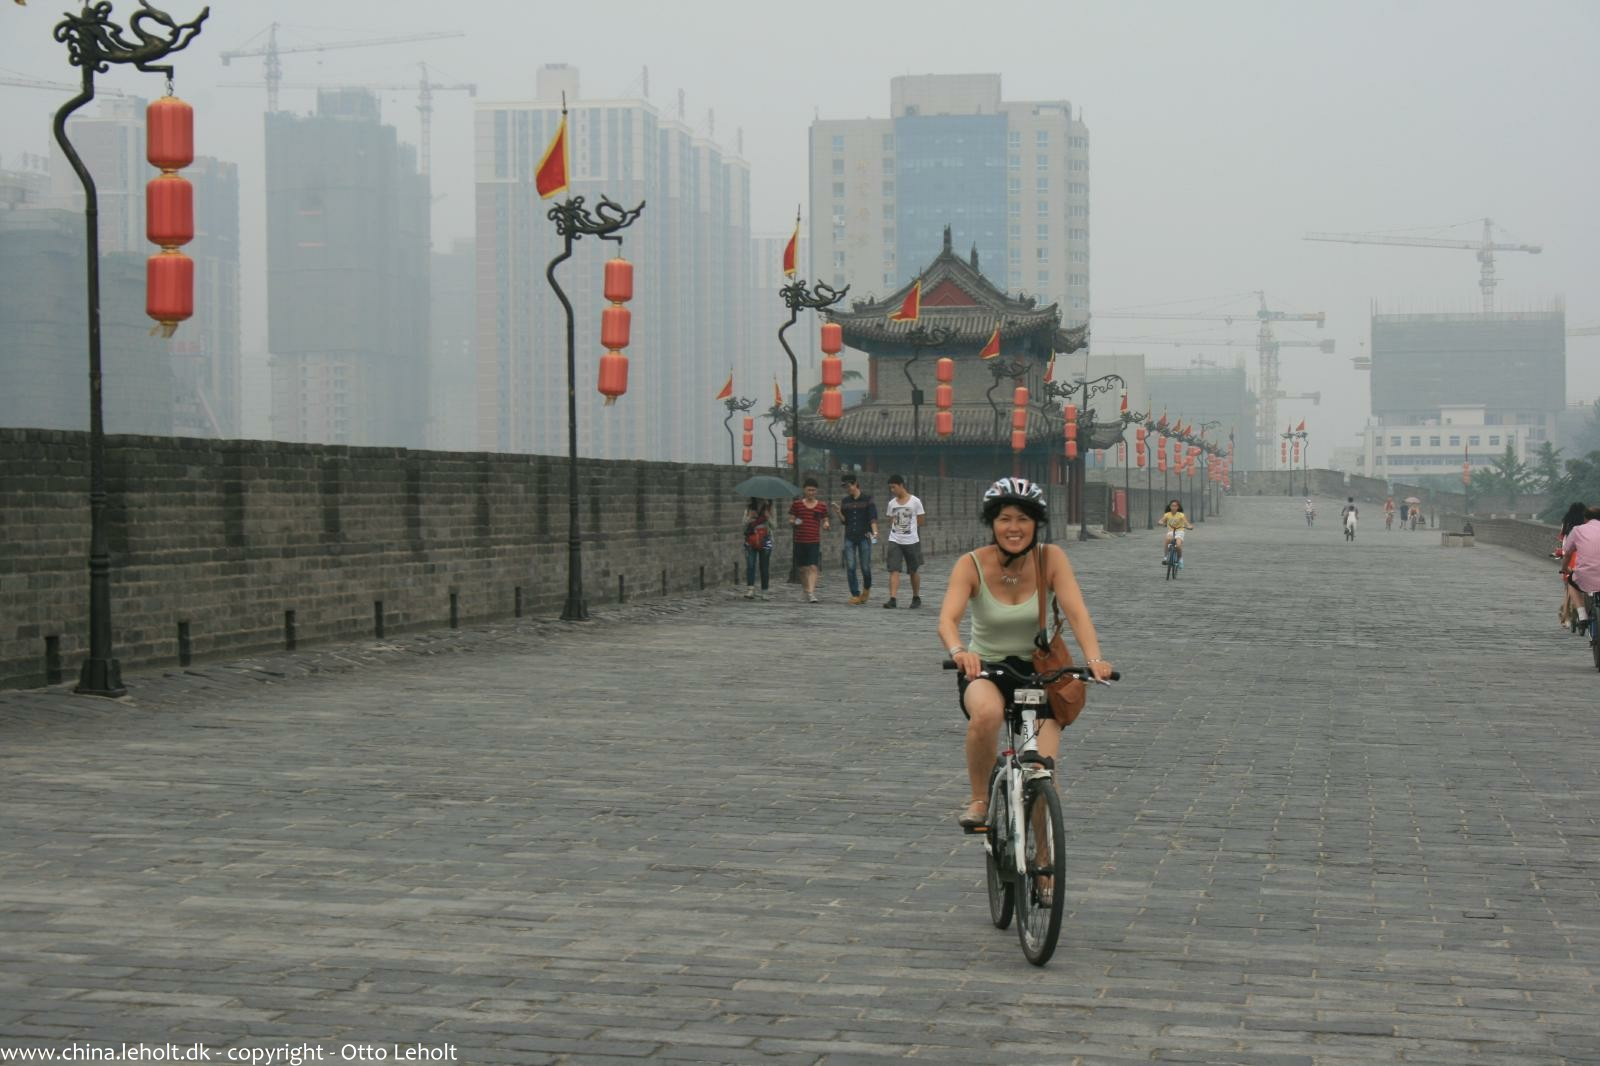 Pictures from China by Otto Leholt &copy